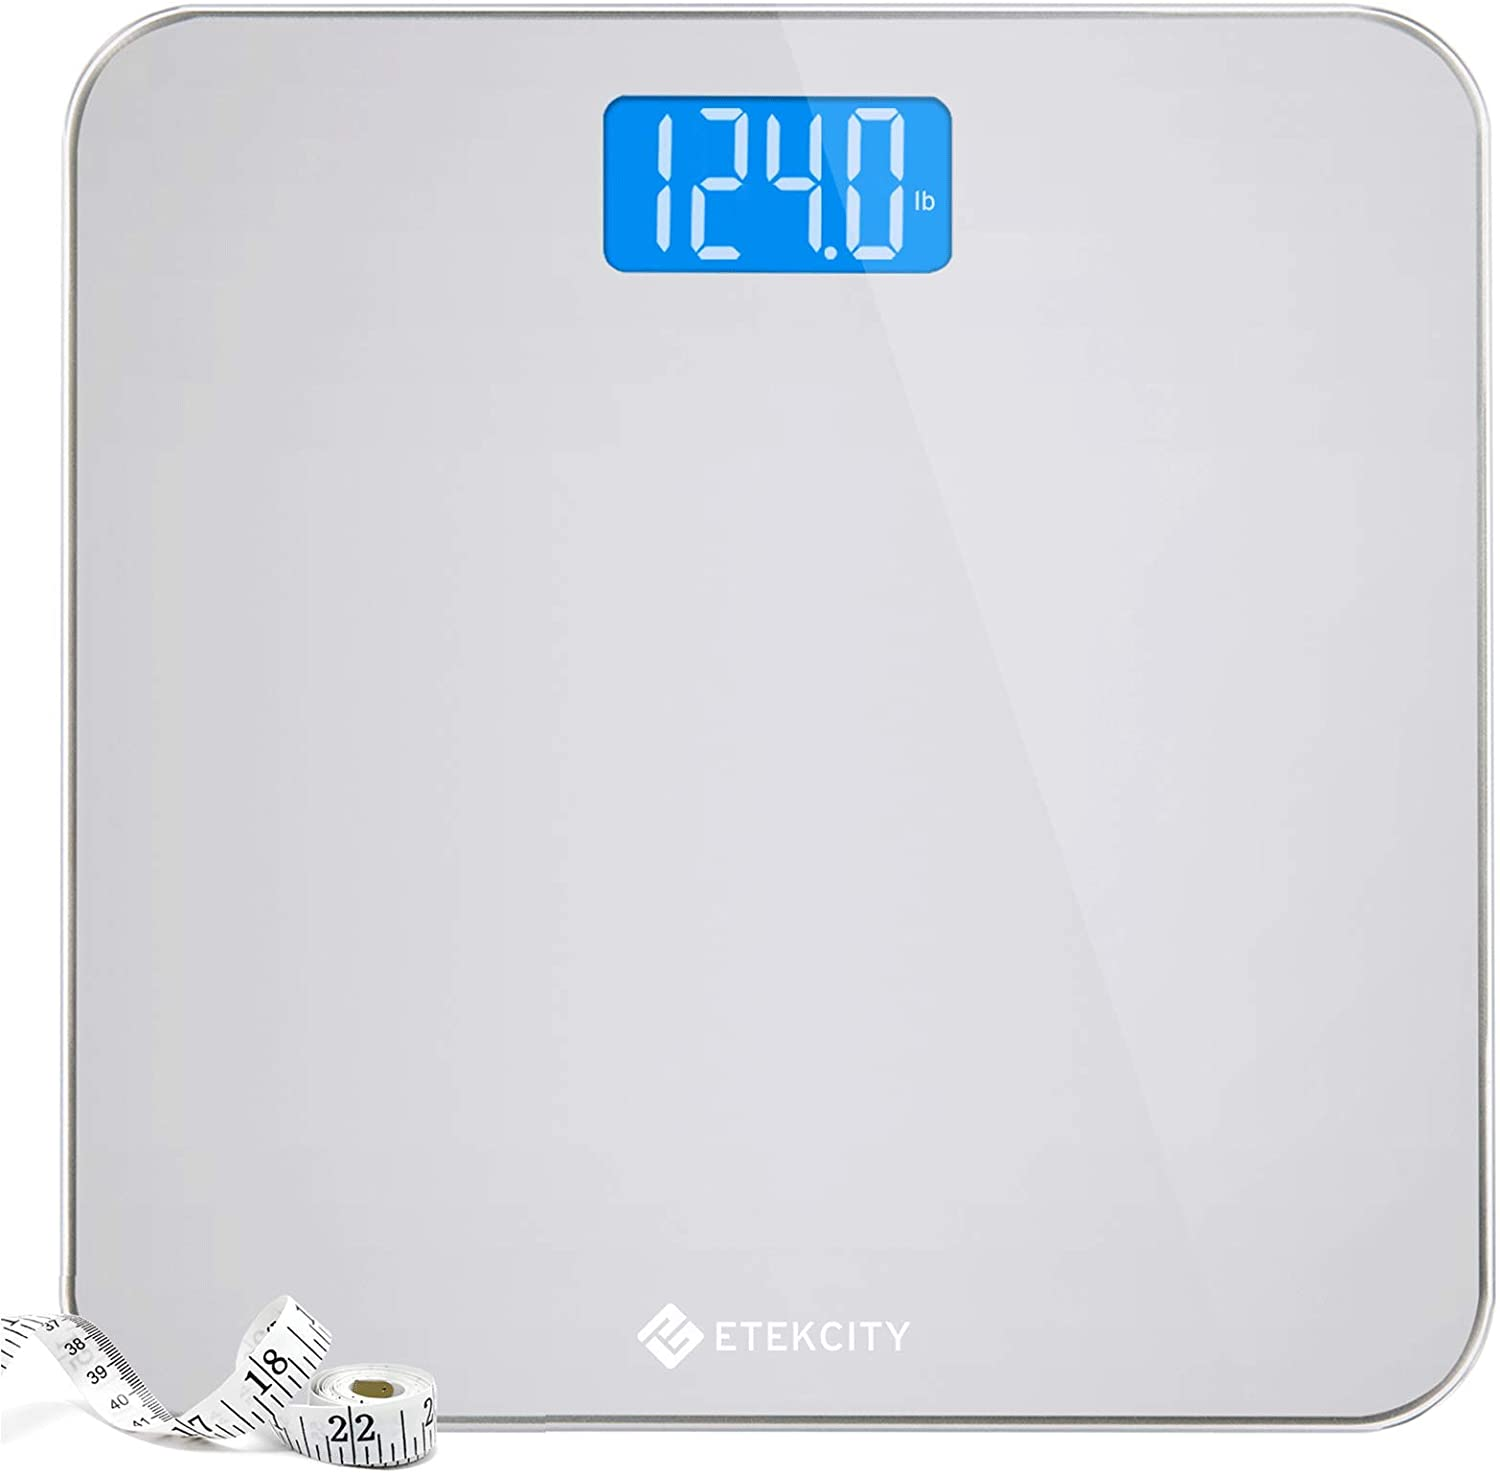 Best Digital Scales to Measure Body Weight